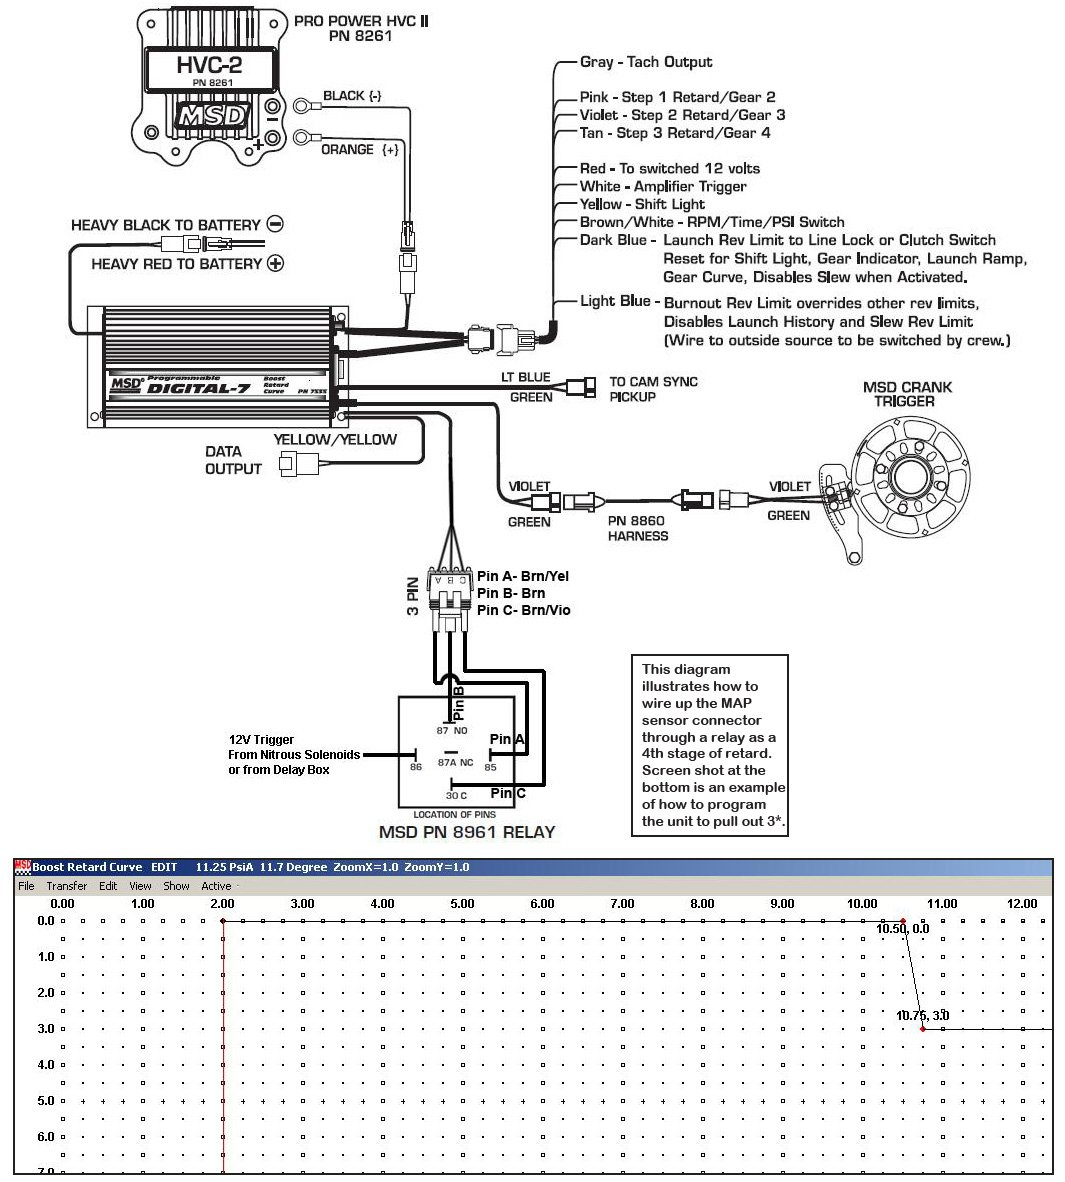 hight resolution of 7320 msd ignition wiring diagram wiring diagram progresif msd 8360 wiring diagram 7320 msd ignition wiring diagram